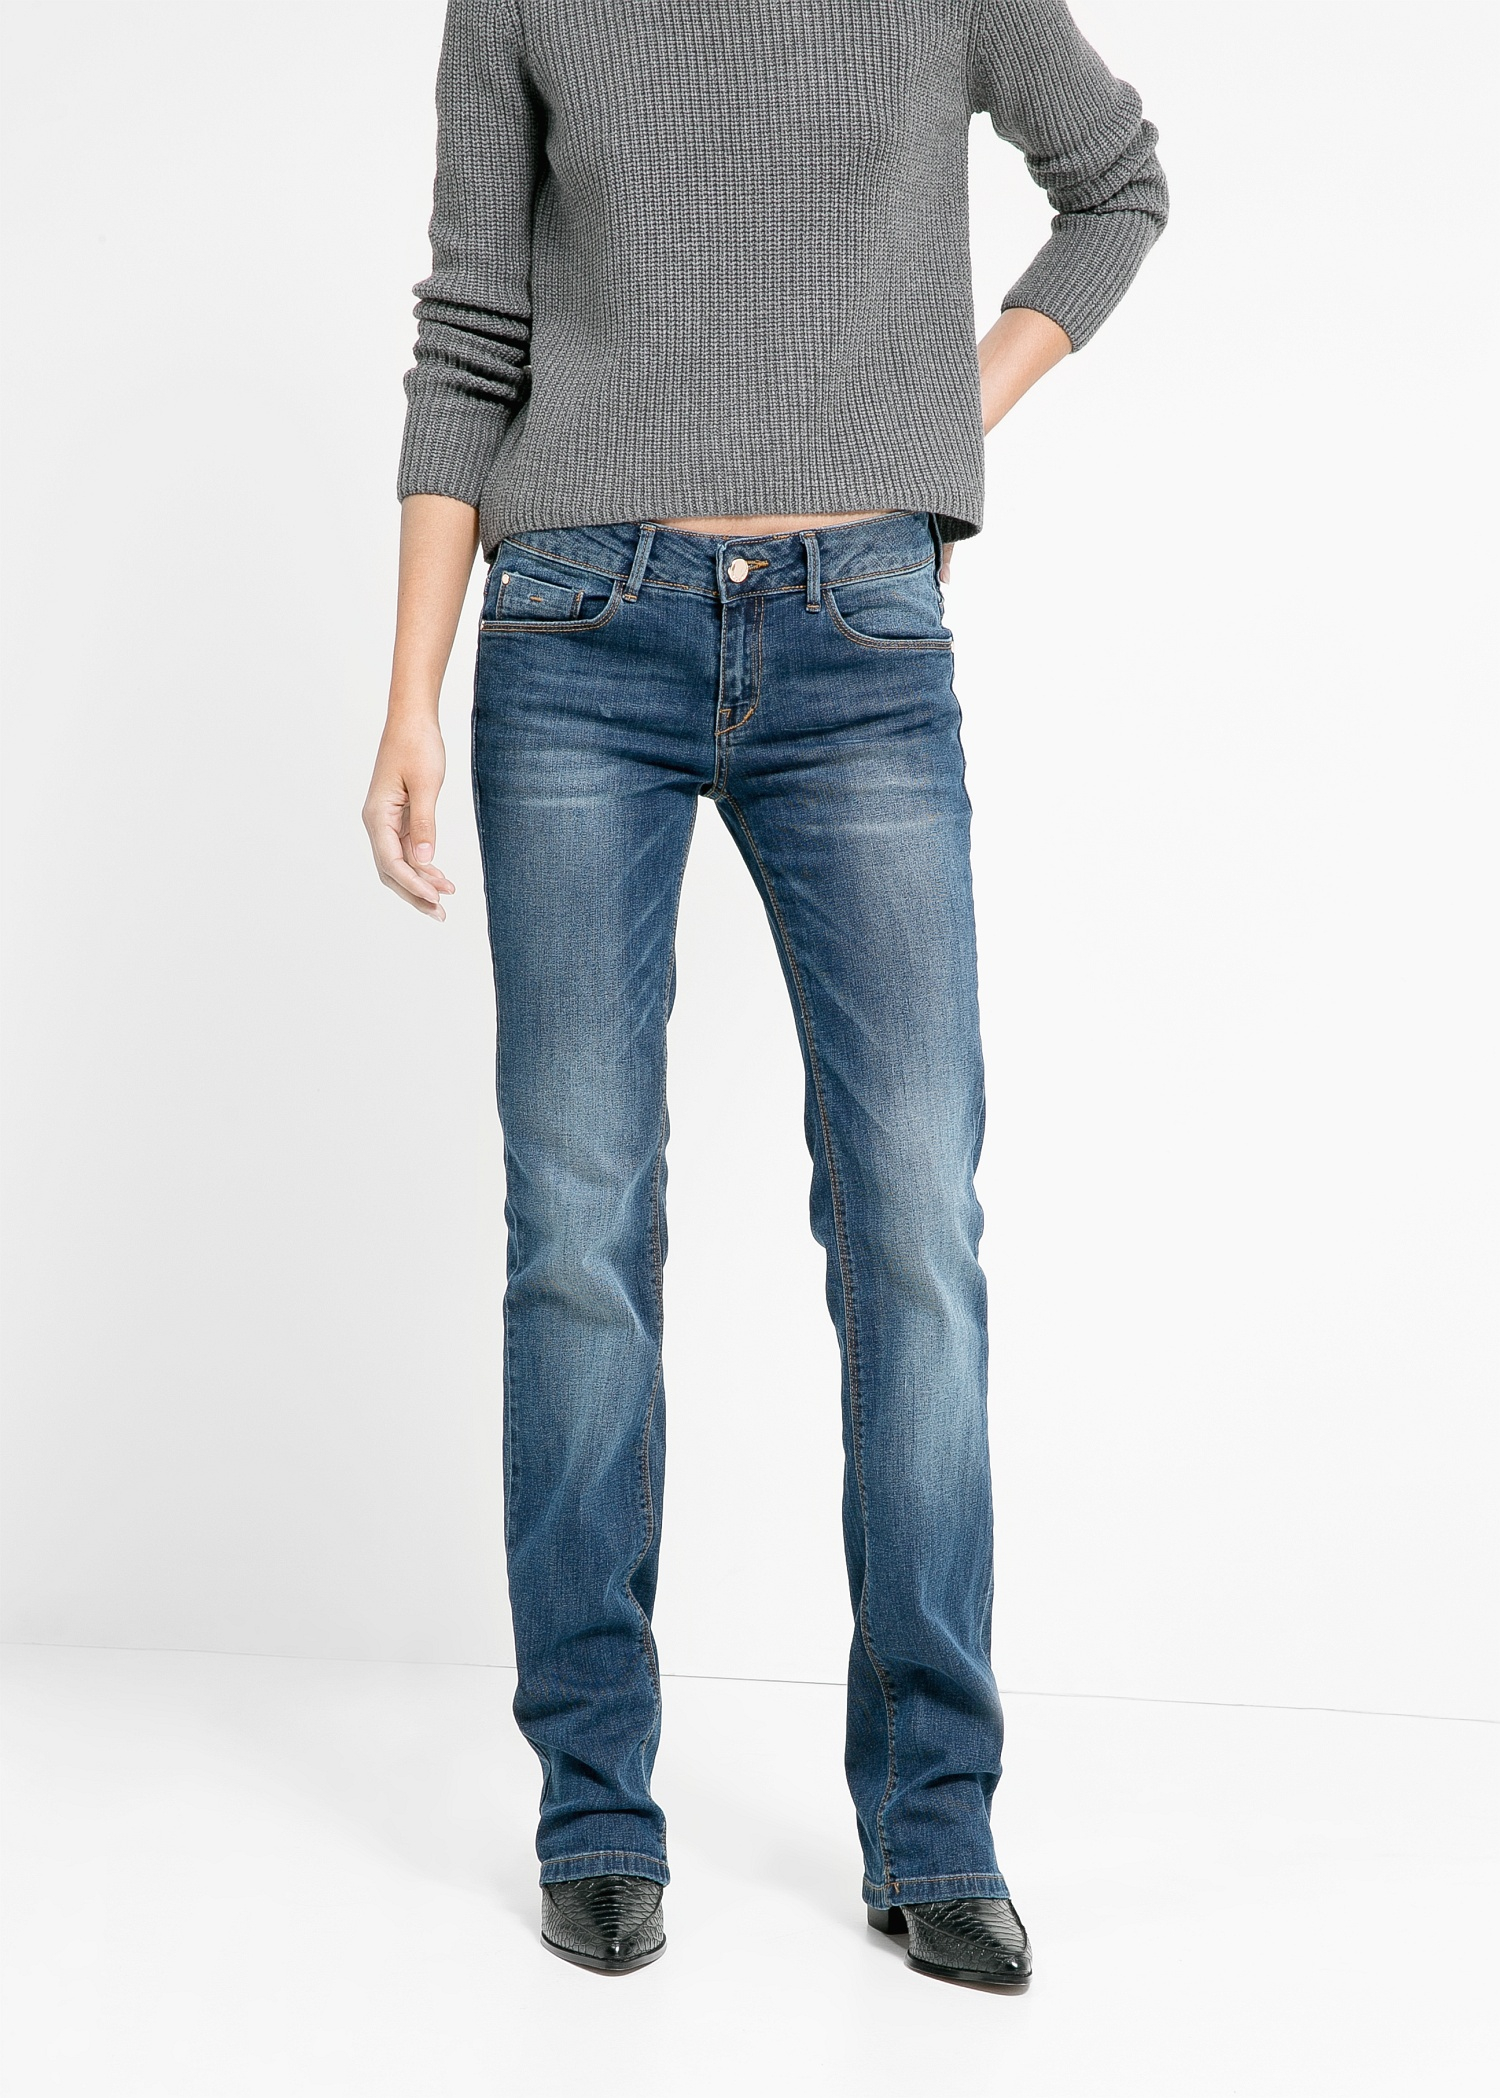 98639f09a9 Lyst - Mango Bootcut Christy Jeans in Blue